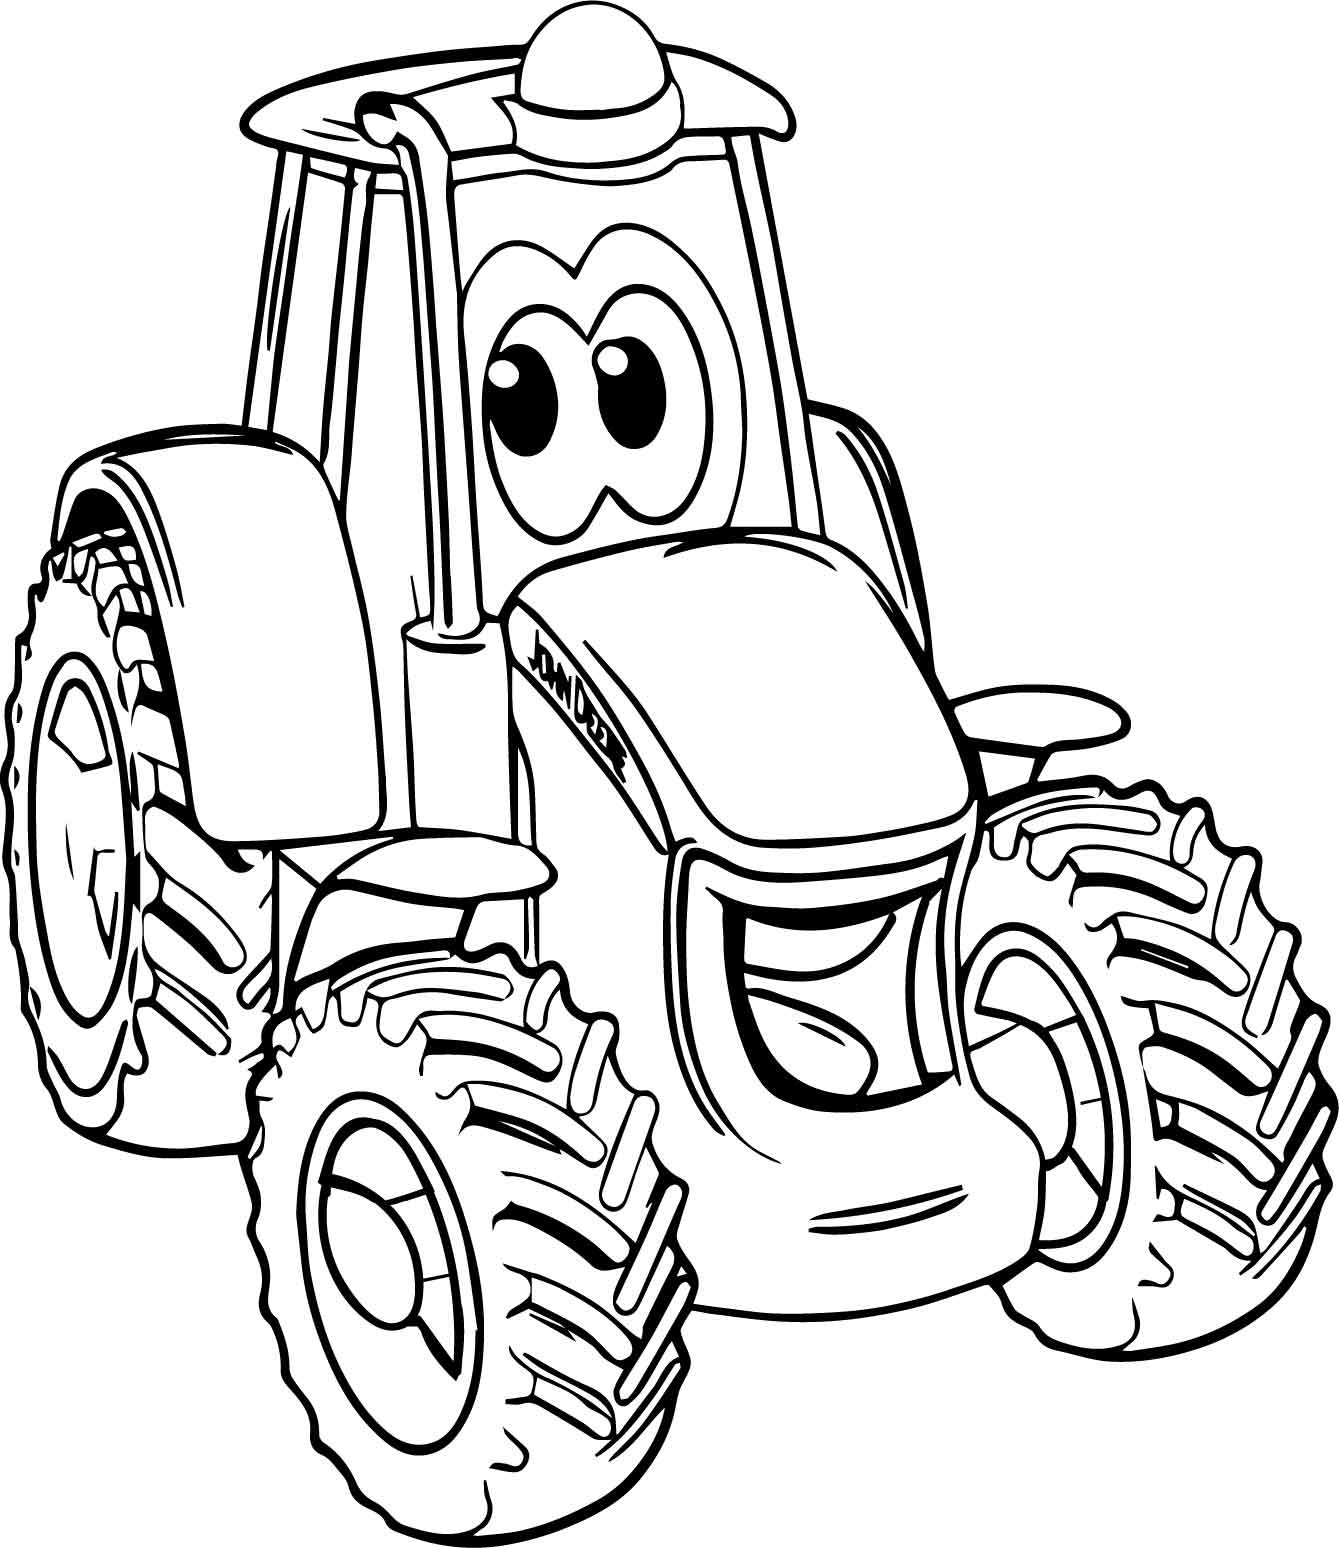 1339x1548 Fresh Simple Tractor Coloring Pages Best Of Funny Tractor Coloring